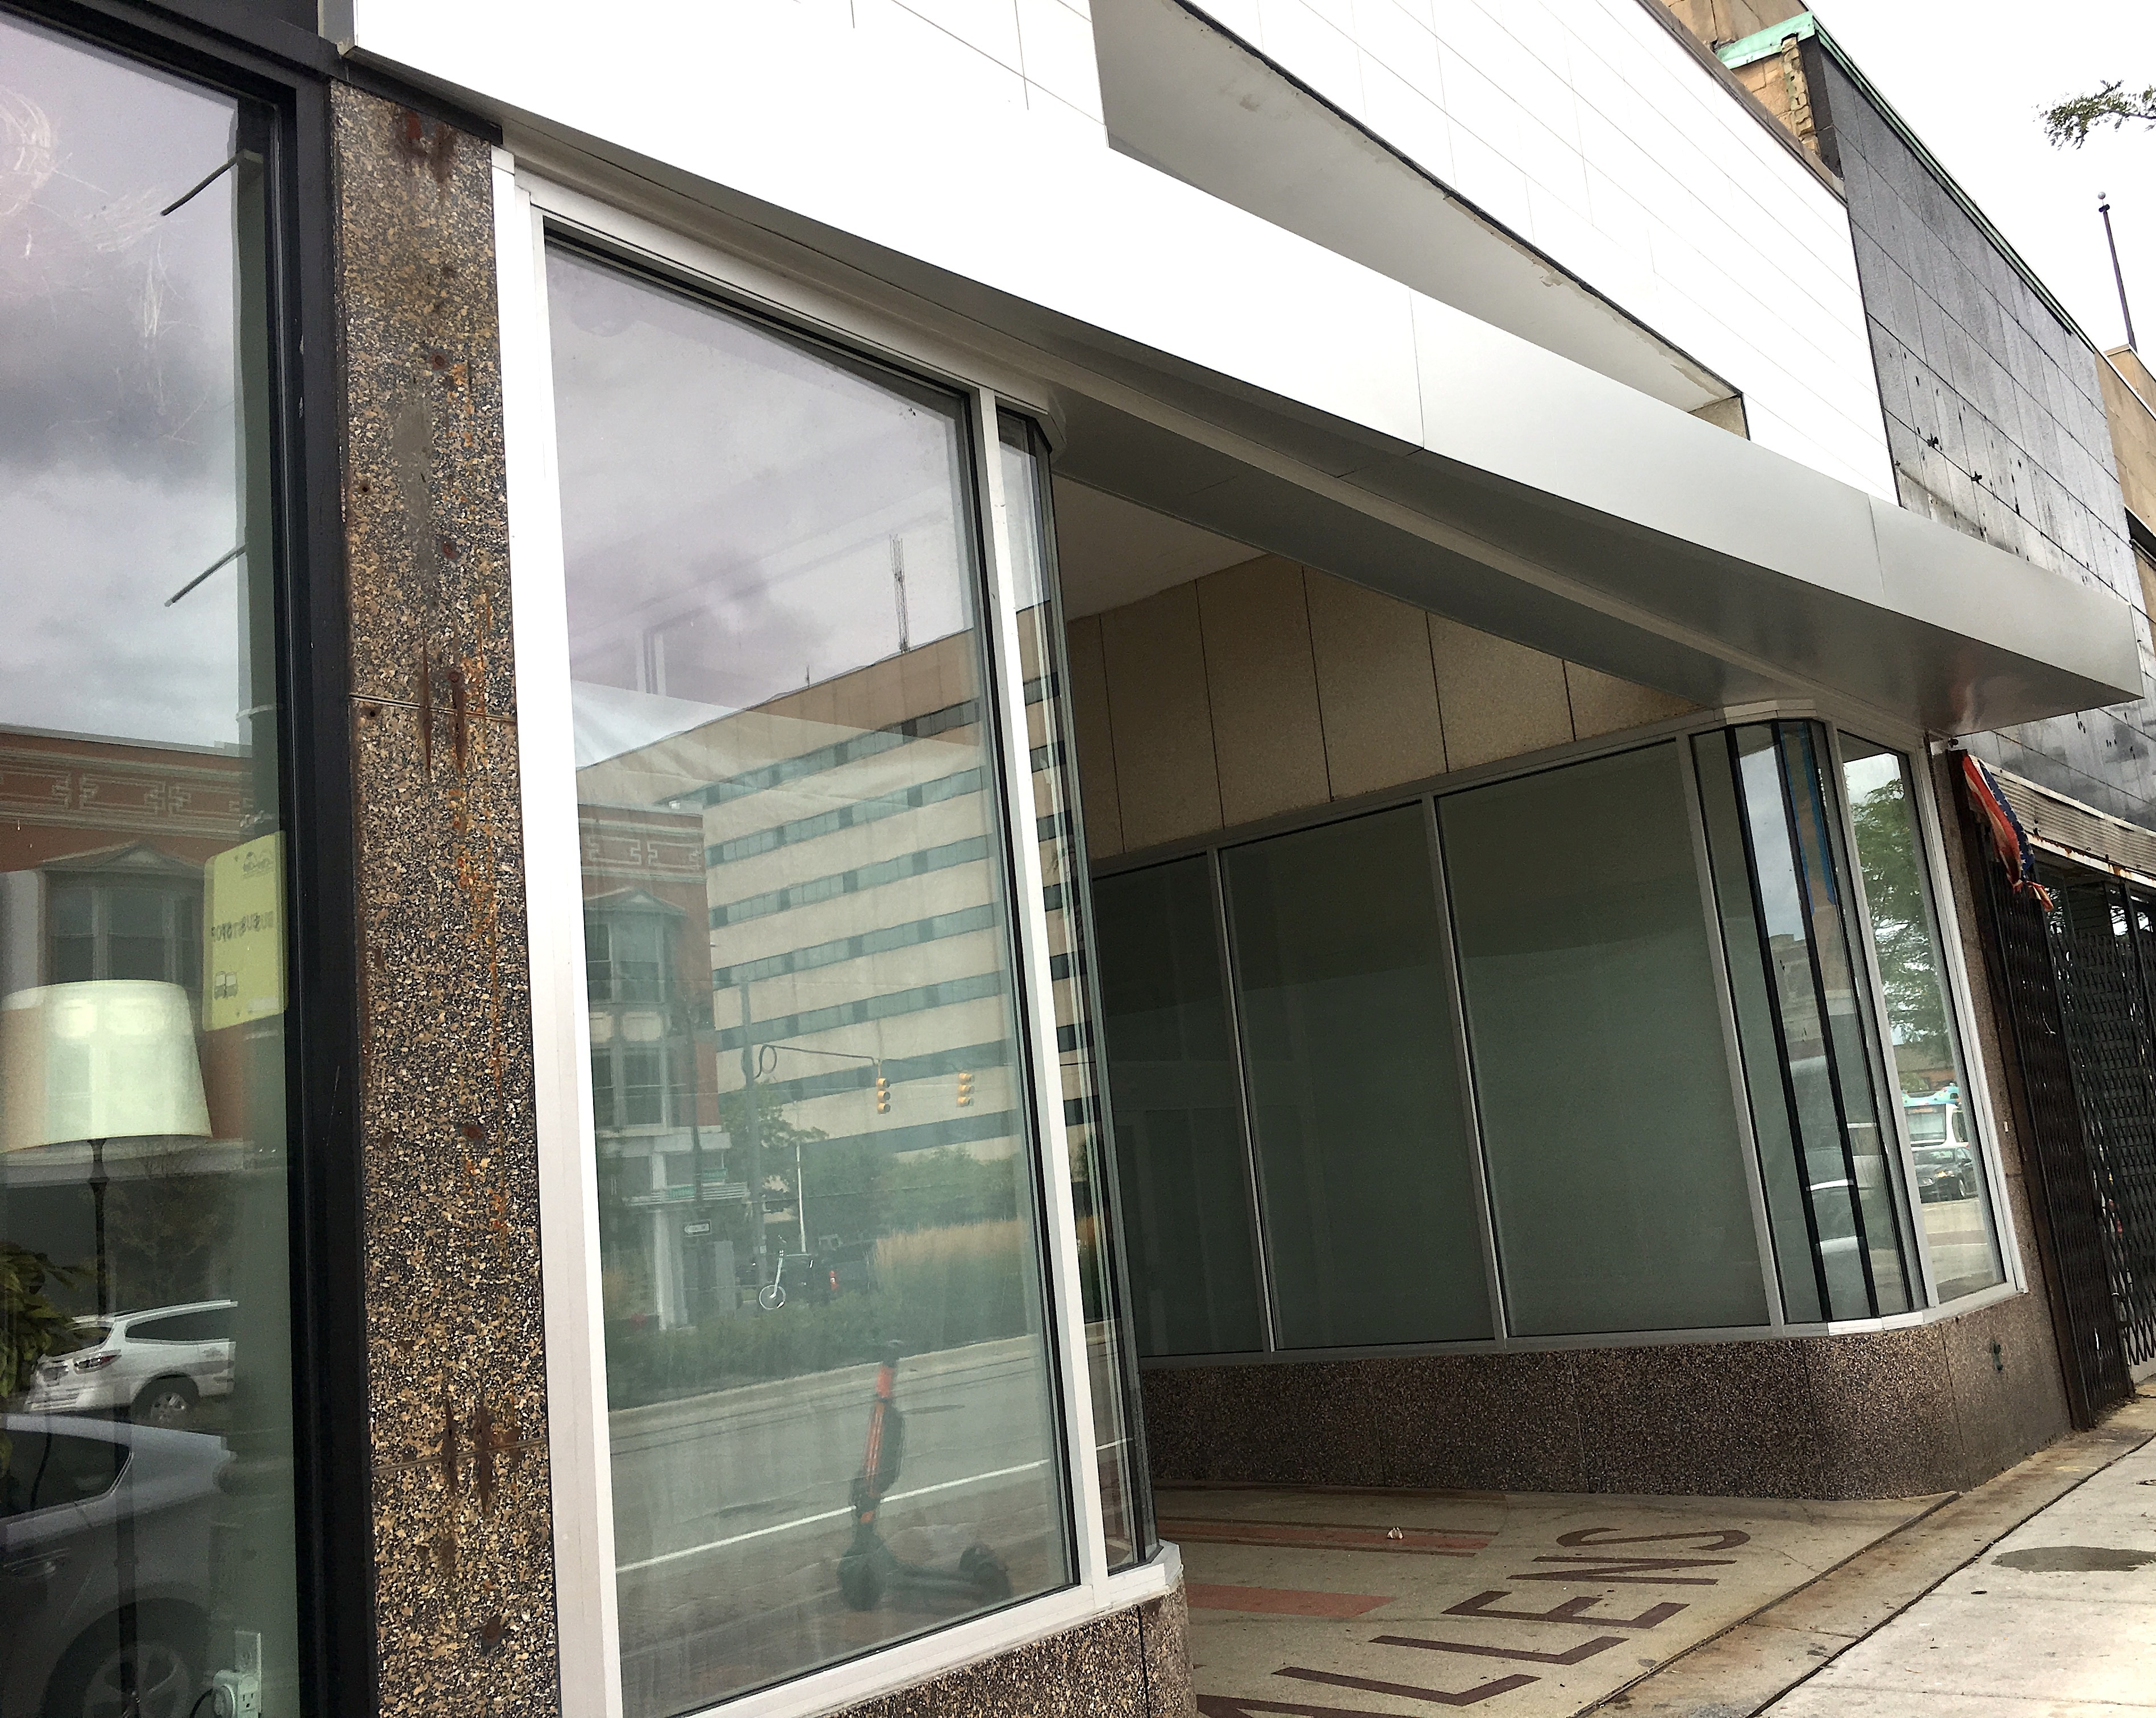 Large windows and a metallic angled panel hanging over the sidewalk on Woodward on a cloudy day.